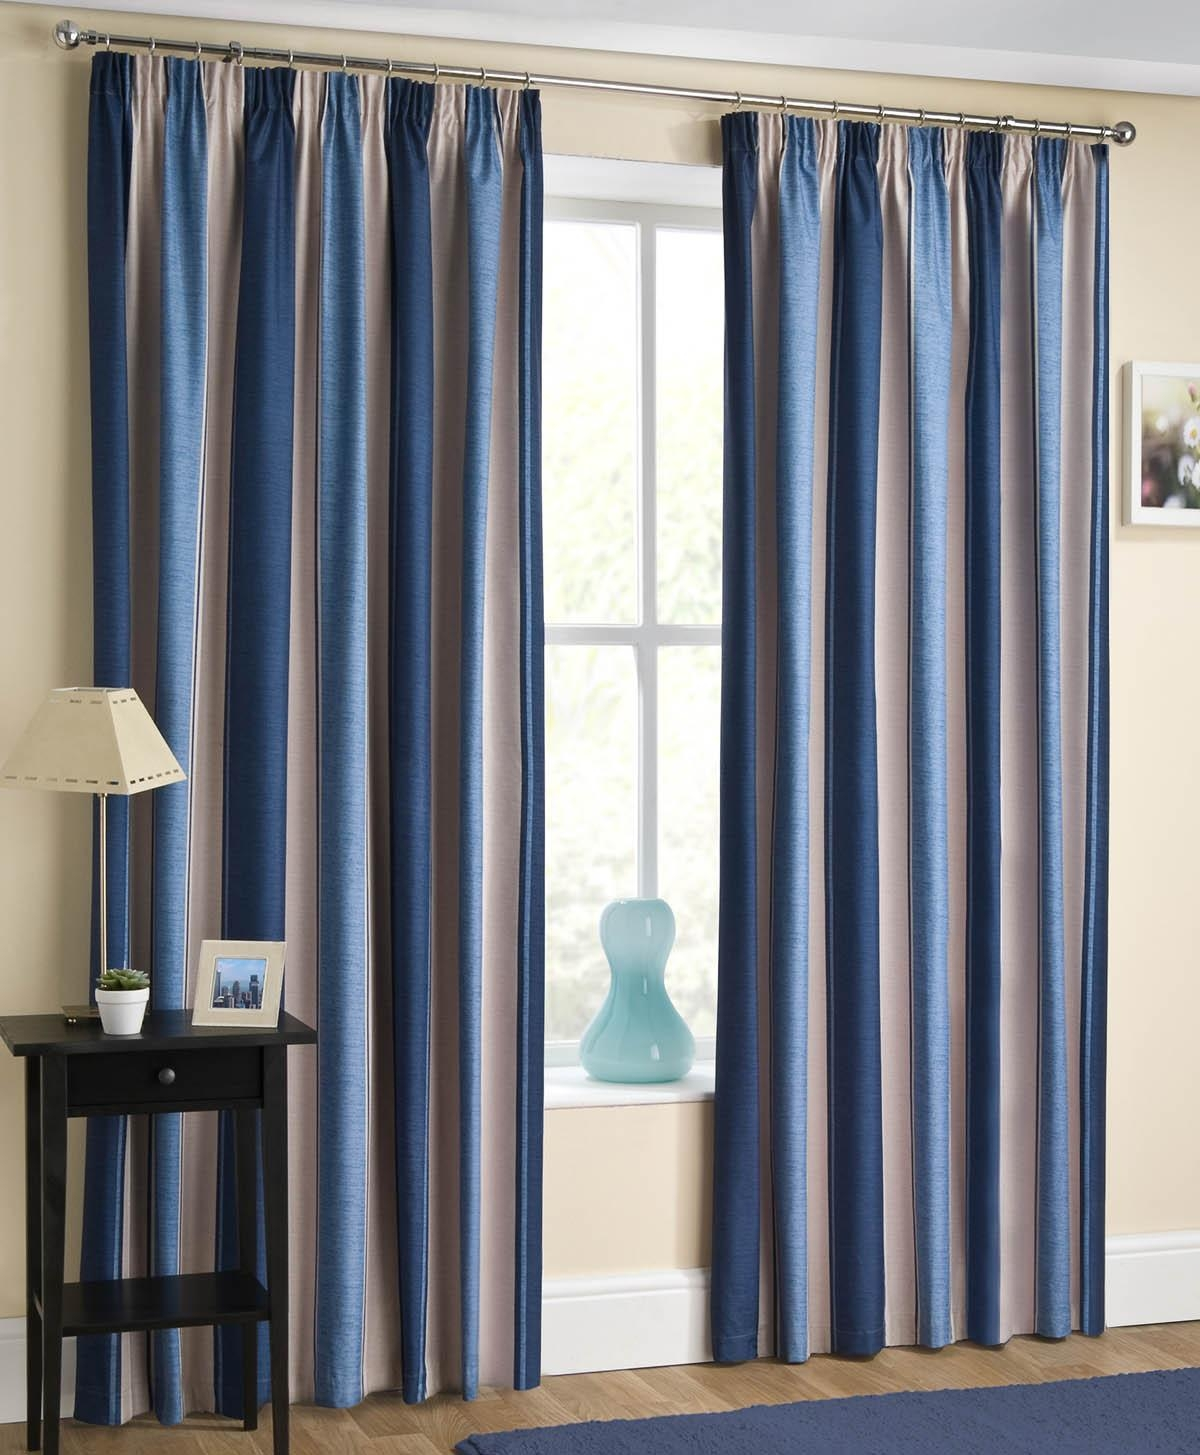 Blue Striped Curtains View Curtains Online Now Terrys Fabrics Pertaining To Thick Striped Curtains (Image 5 of 15)